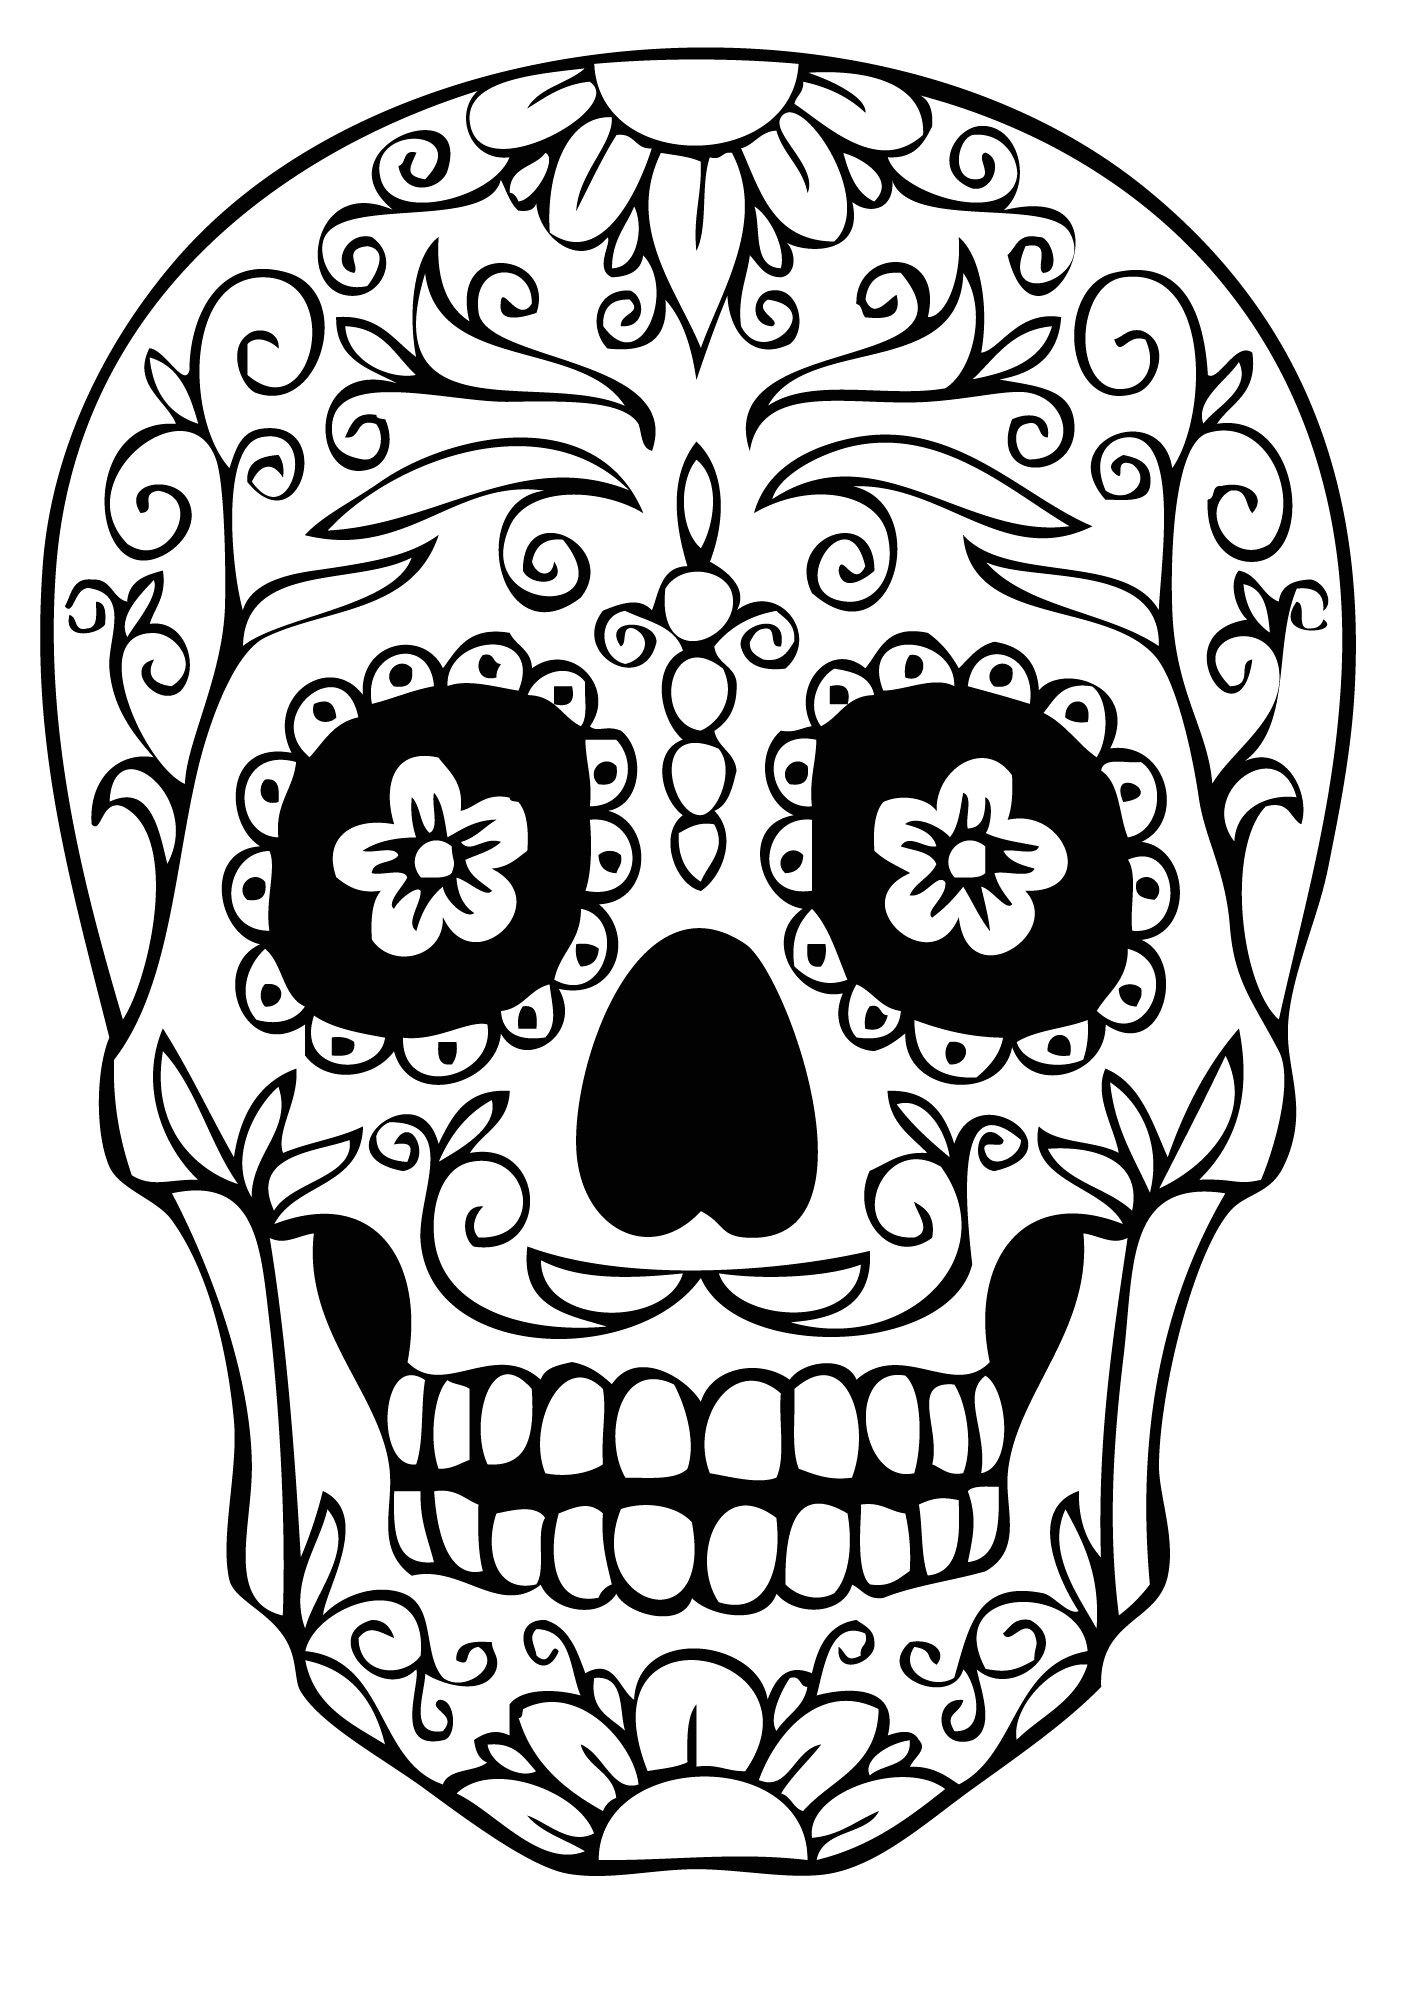 Easy Day Of the Dead Coloring Pages for Kids Dia De Los Muertos Day Of the Dead for Children Dia De